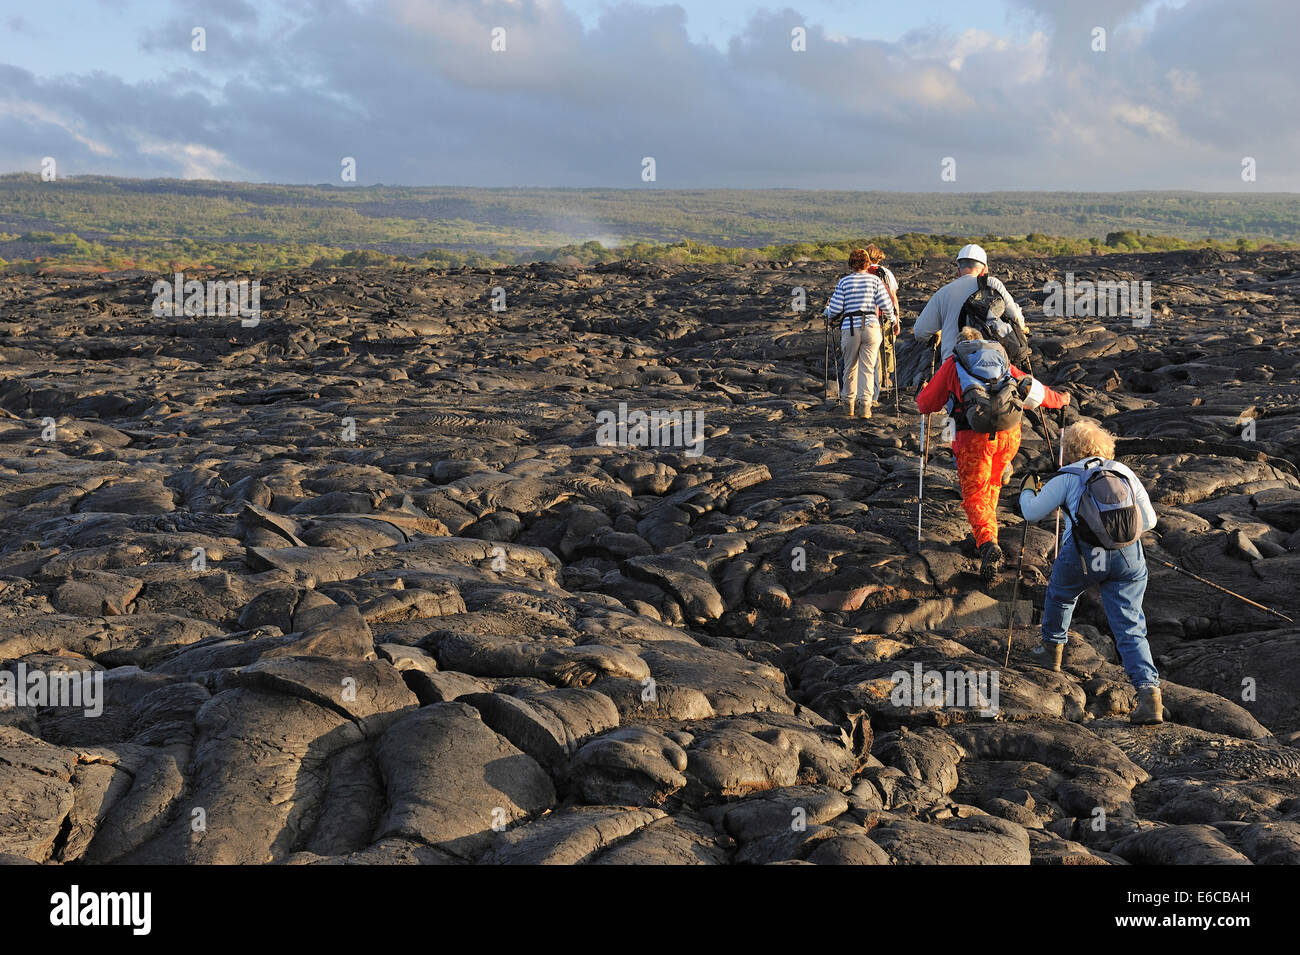 Group of hikers walking on cooled pahoehoe lava flow at sunrise, Kilauea Volcano, Big Island, Hawaii Volcanoes National - Stock Image